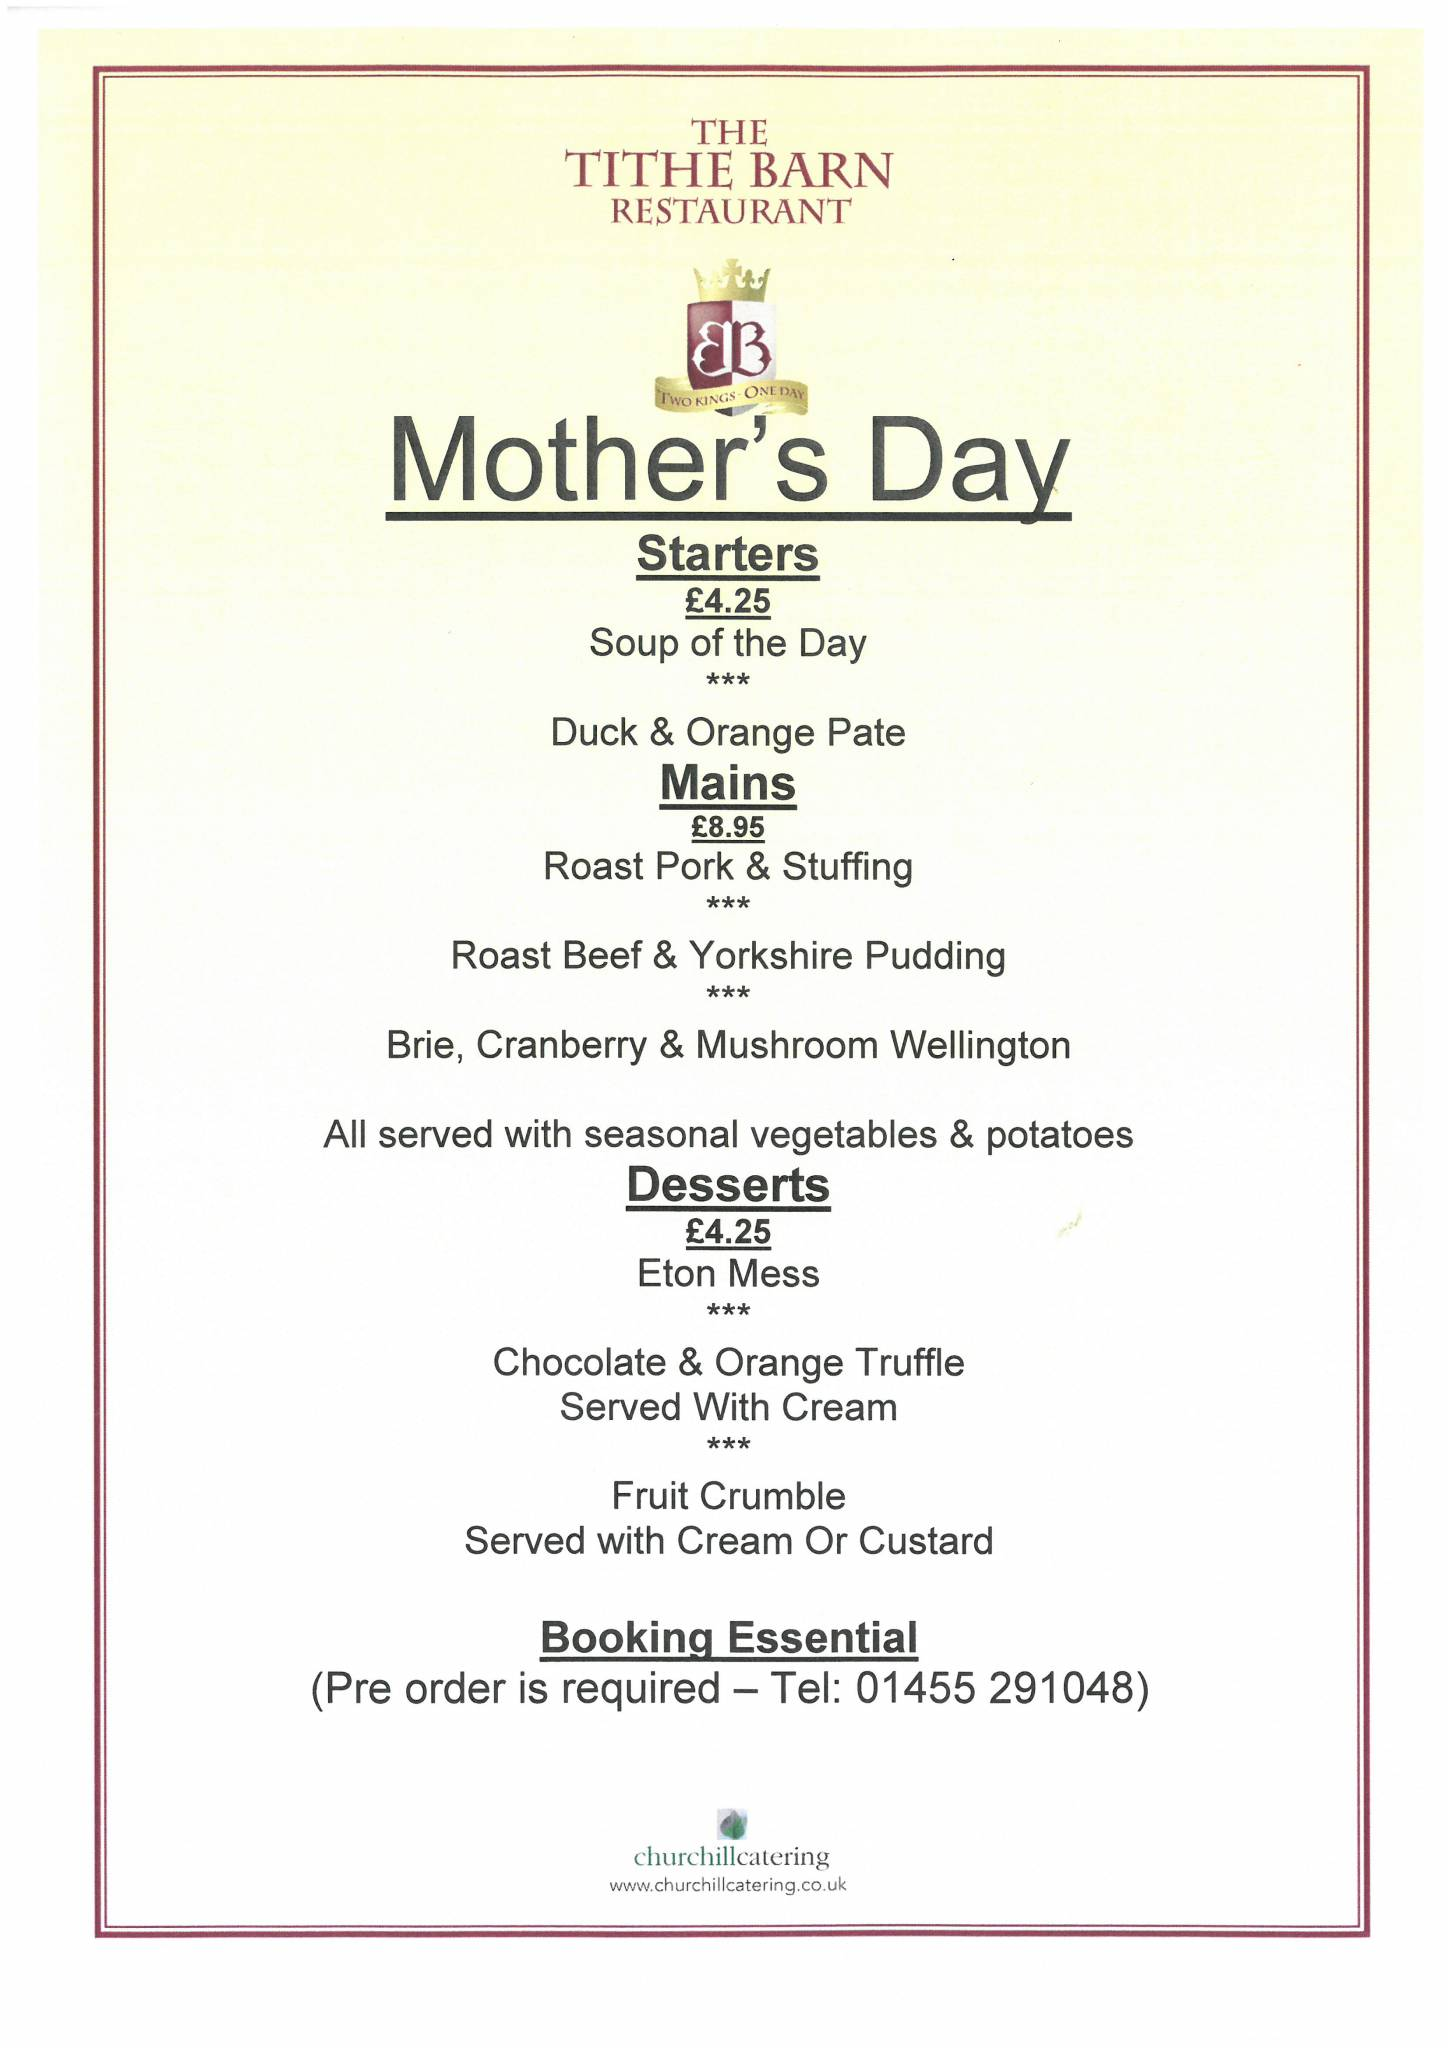 Mother's Day Menu in the Tithe Barn Cafe